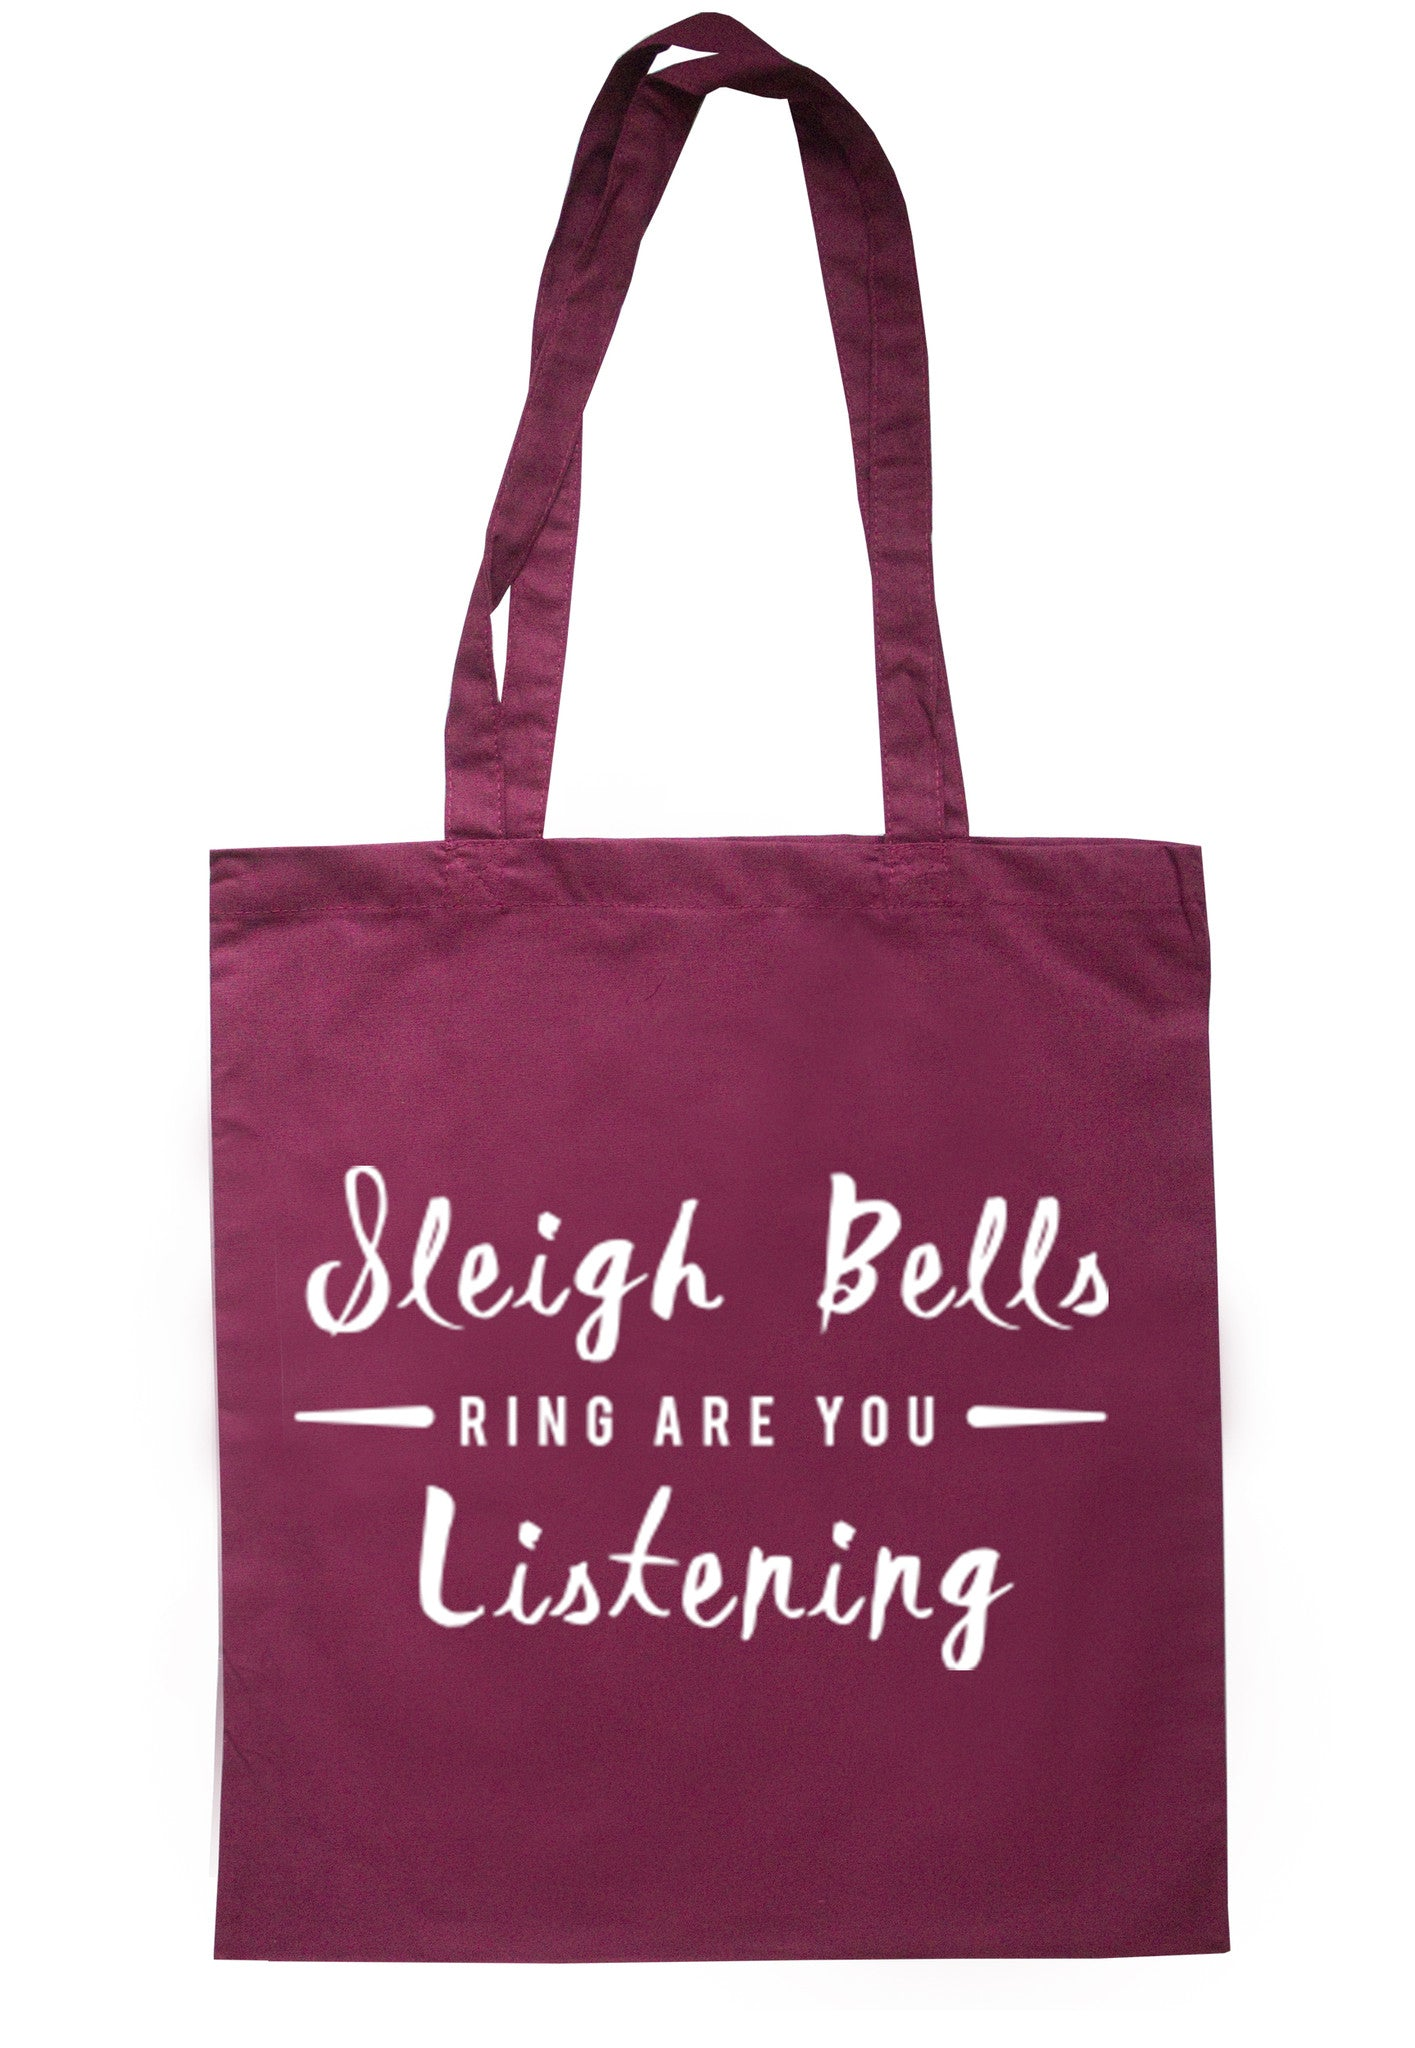 Sleigh Bells Ring Are You Listening Tote Bag TB0102 - Illustrated Identity Ltd.